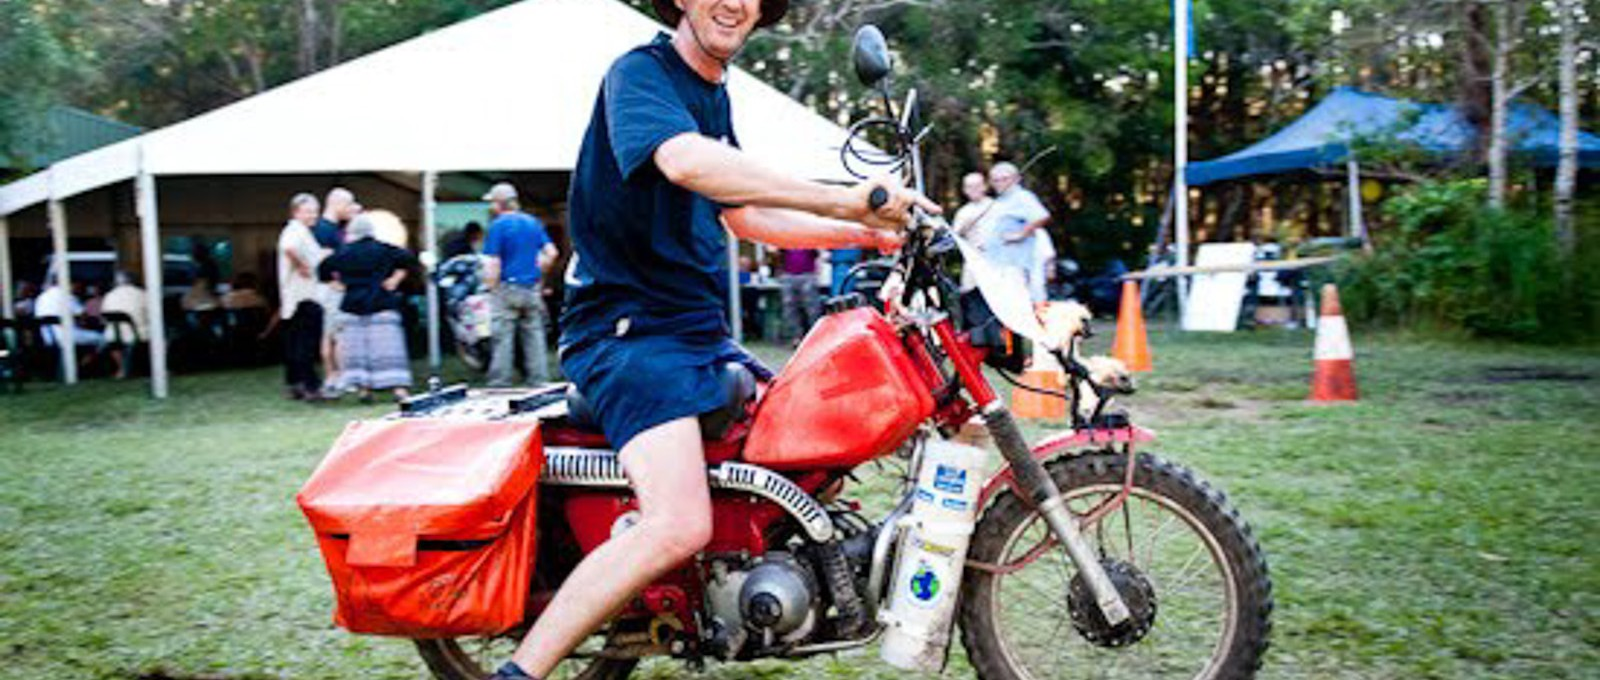 Glen on his postie, HU2010 Meeting, Australia